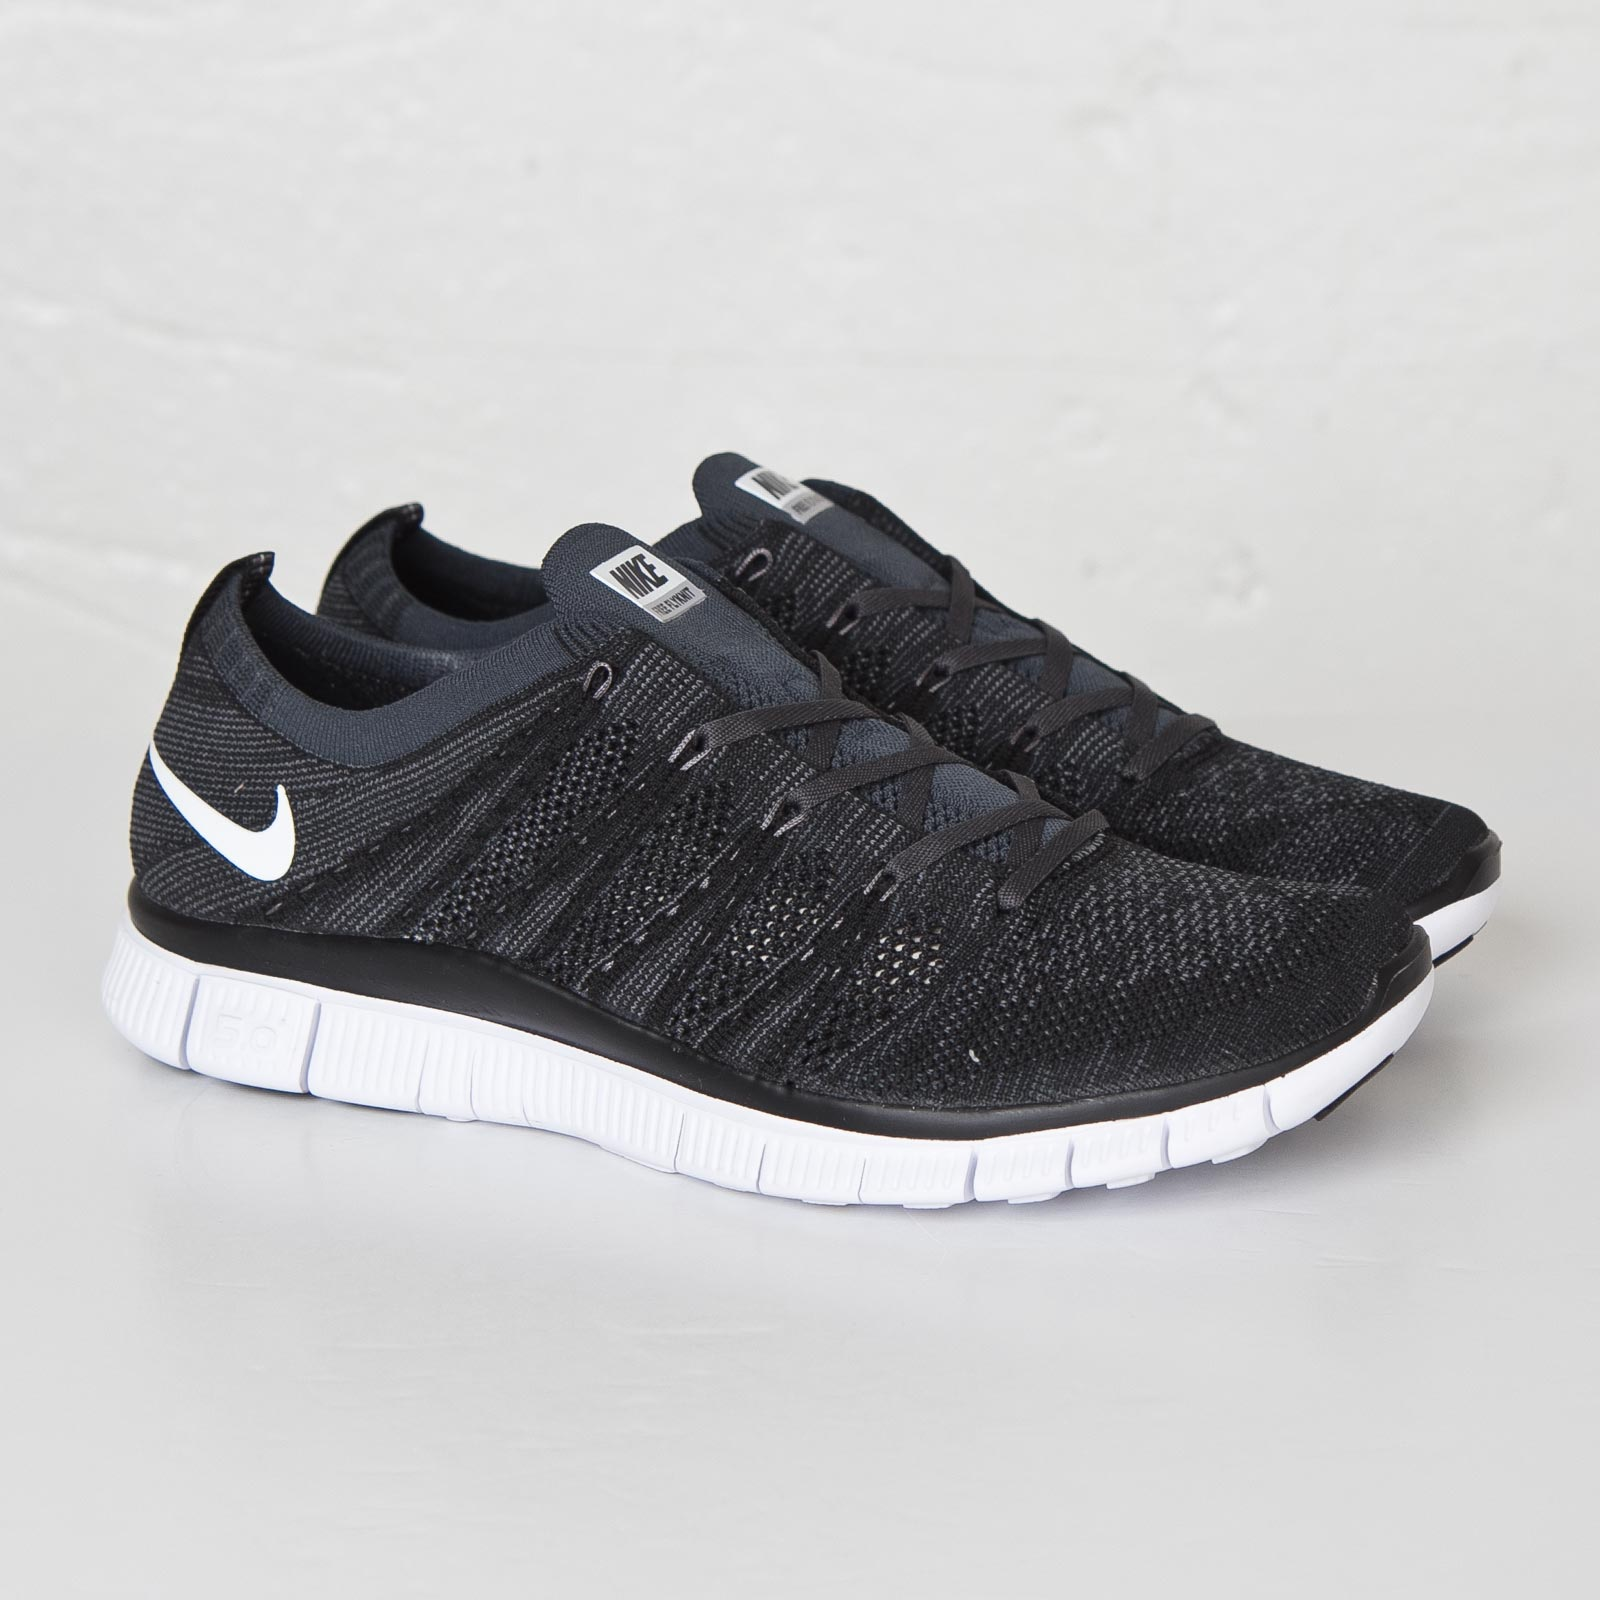 new products 99c45 a7a23 Nike Free Flyknit NSW